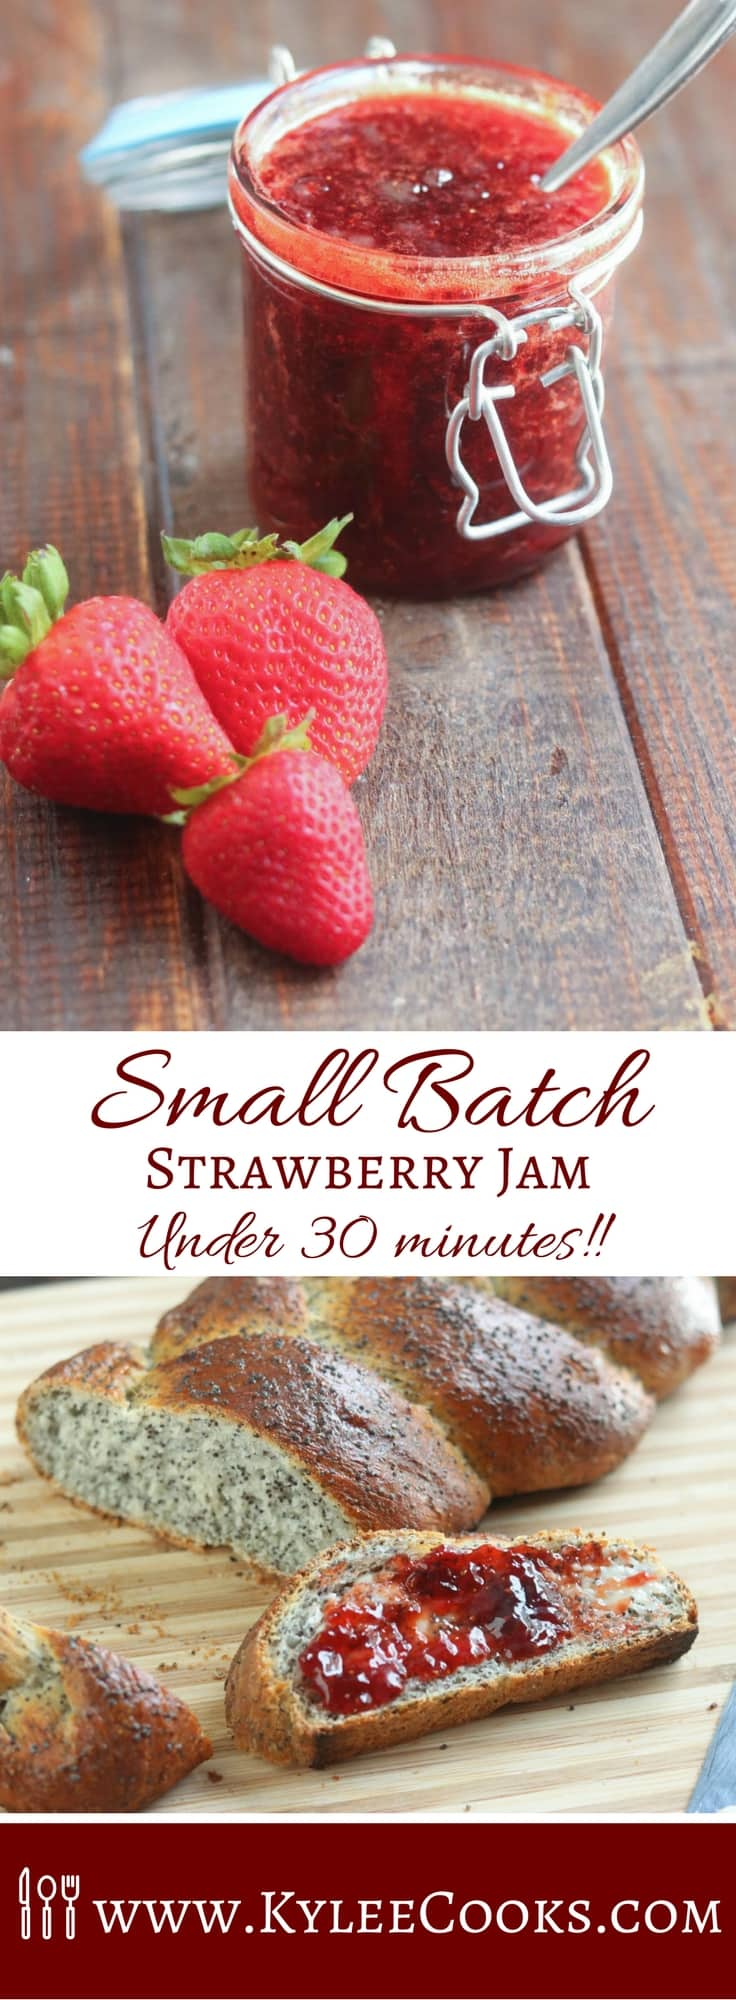 Small batch strawberry jam in under an hour! #strawberry #recipe #jam